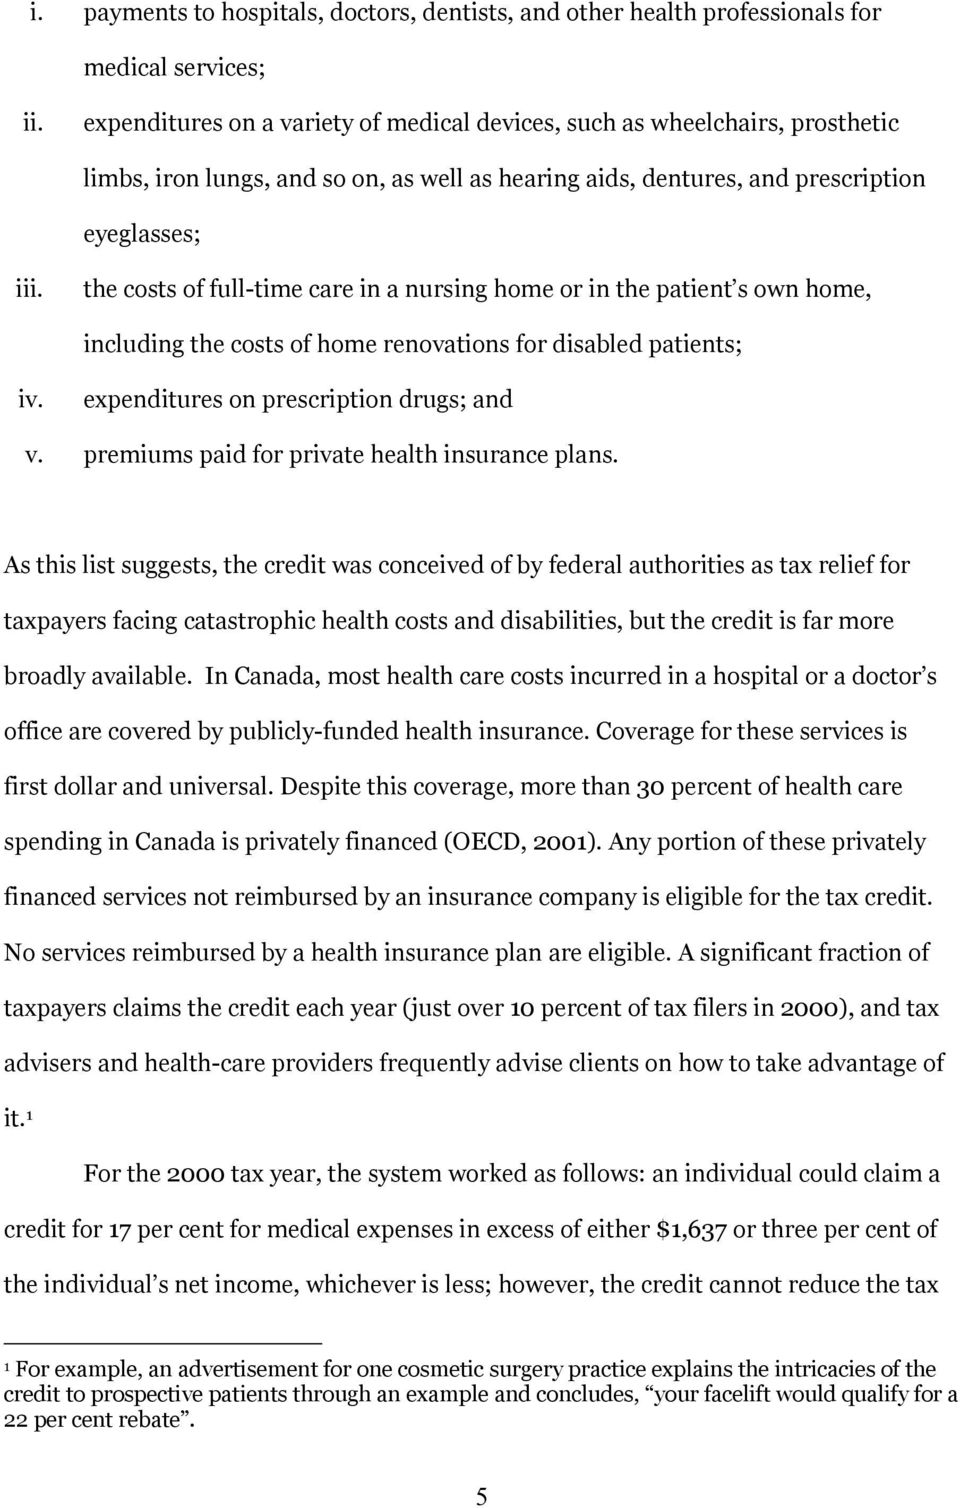 the costs of full-time care in a nursing home or in the patient s own home, including the costs of home renovations for disabled patients; iv. expenditures on prescription drugs; and v.